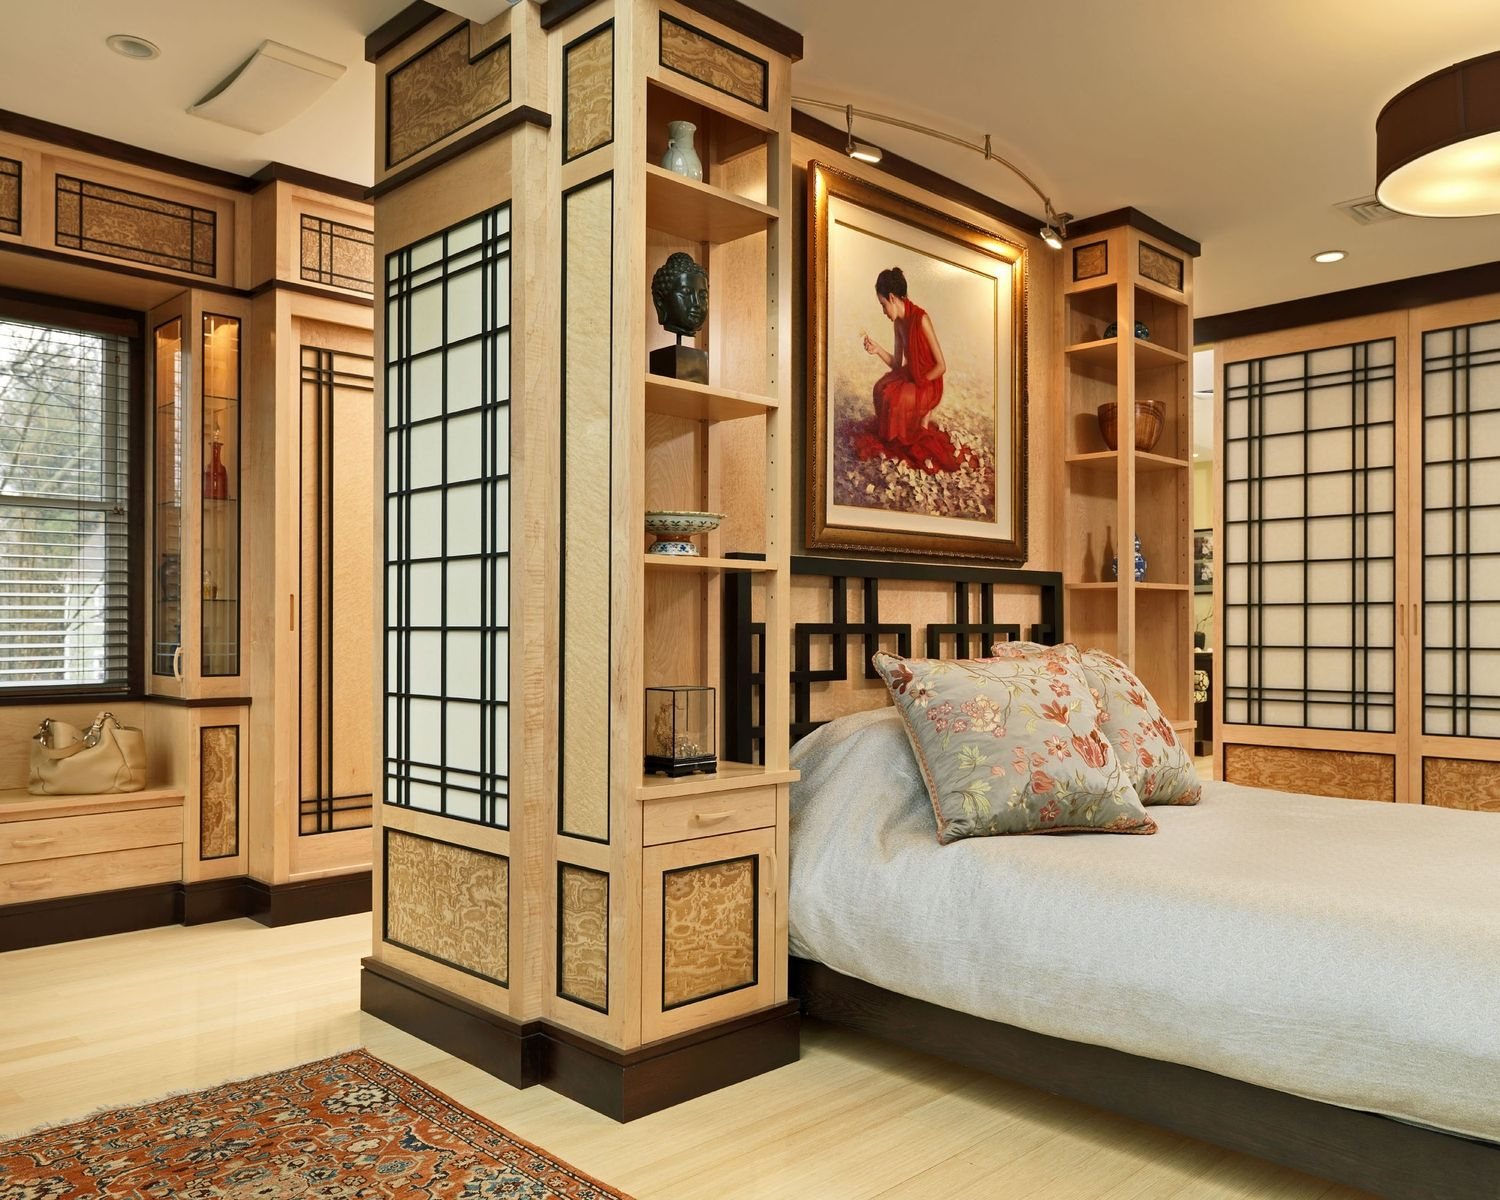 Wonder why this 100,000 custom Asian bedroom is on this